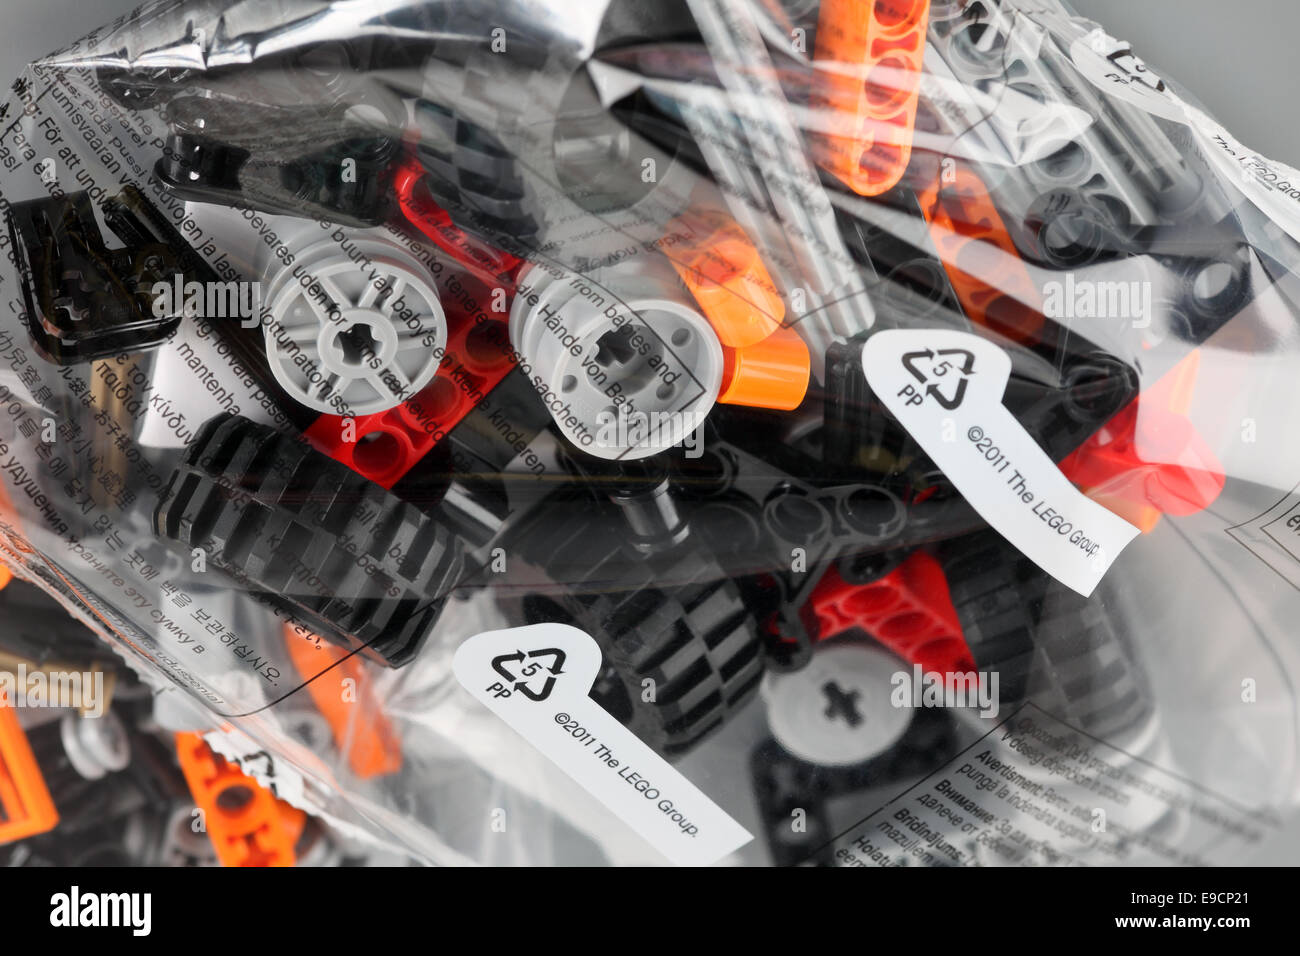 Tambov, Russian Federation - April 06, 2013 LEGO Technic constructor set in plastic packs on grey background. Studio - Stock Image